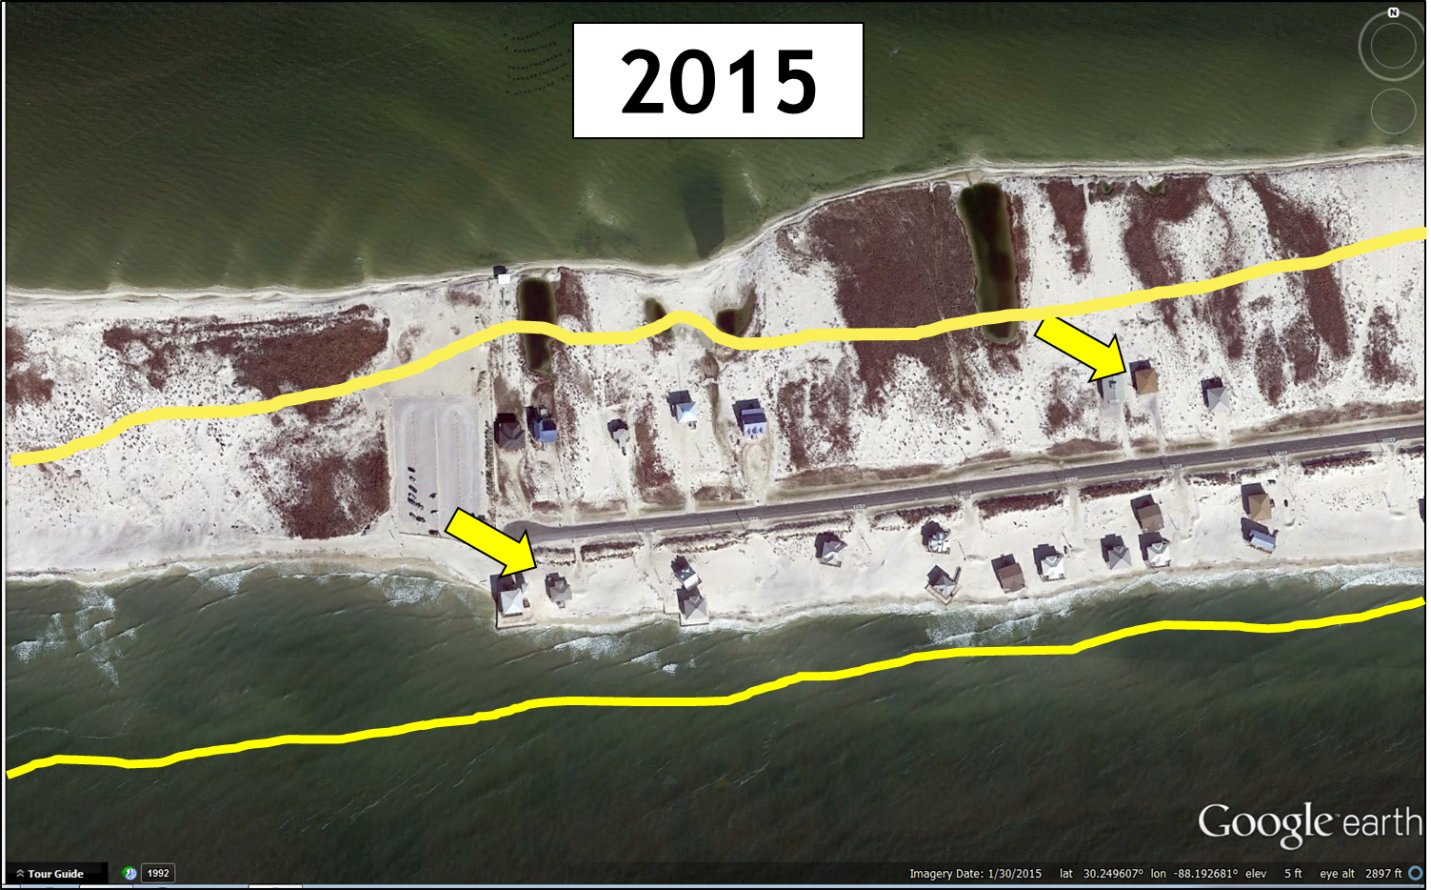 West end of Dauphin Island, Alabama, in 2015. Yellow outline is the outline of the main land mass in 2000. The yellow arrows are pointing to houses that can be used as benchmarks from the previous figure. Imagery from Google Earth.